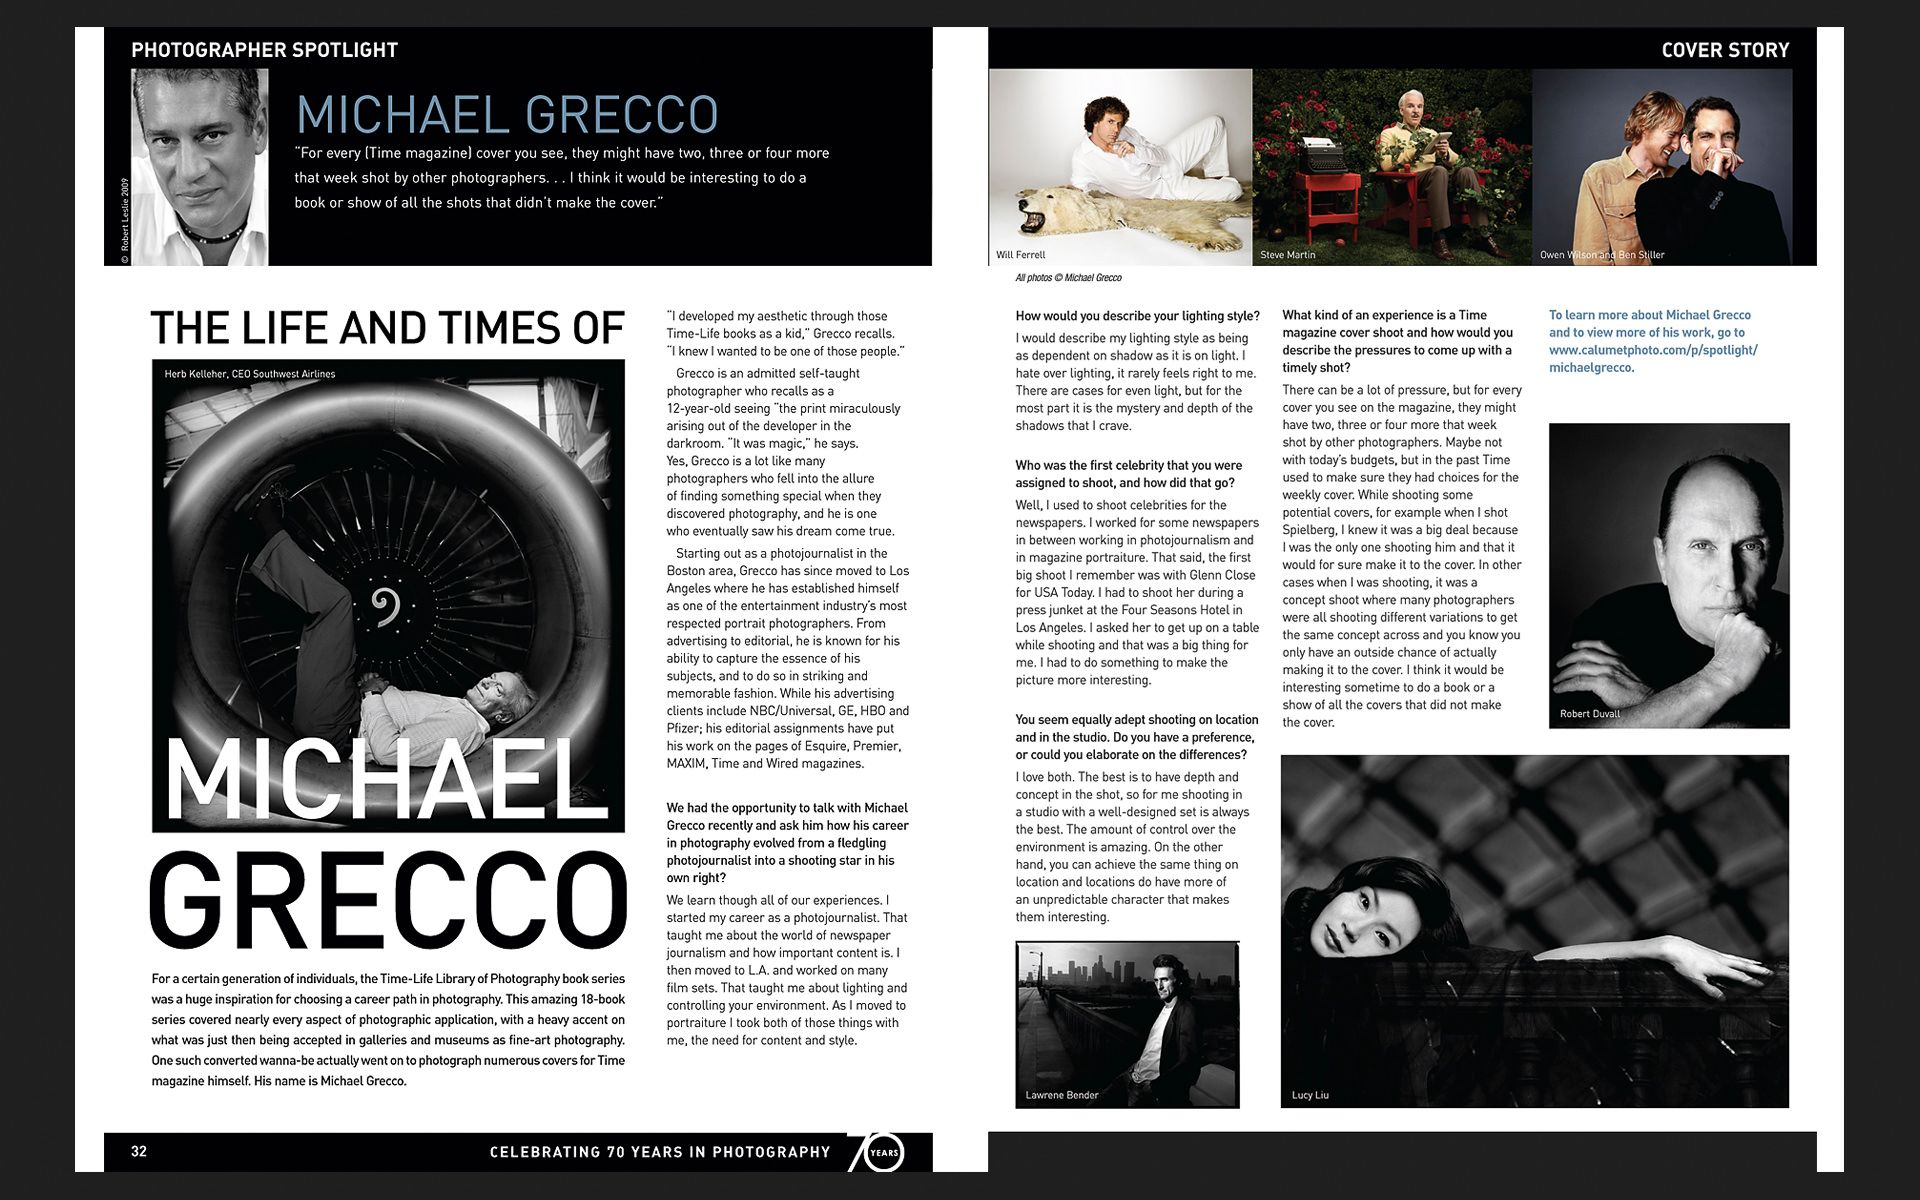 Michael-Grecco-Commercial-Photographer.jpg